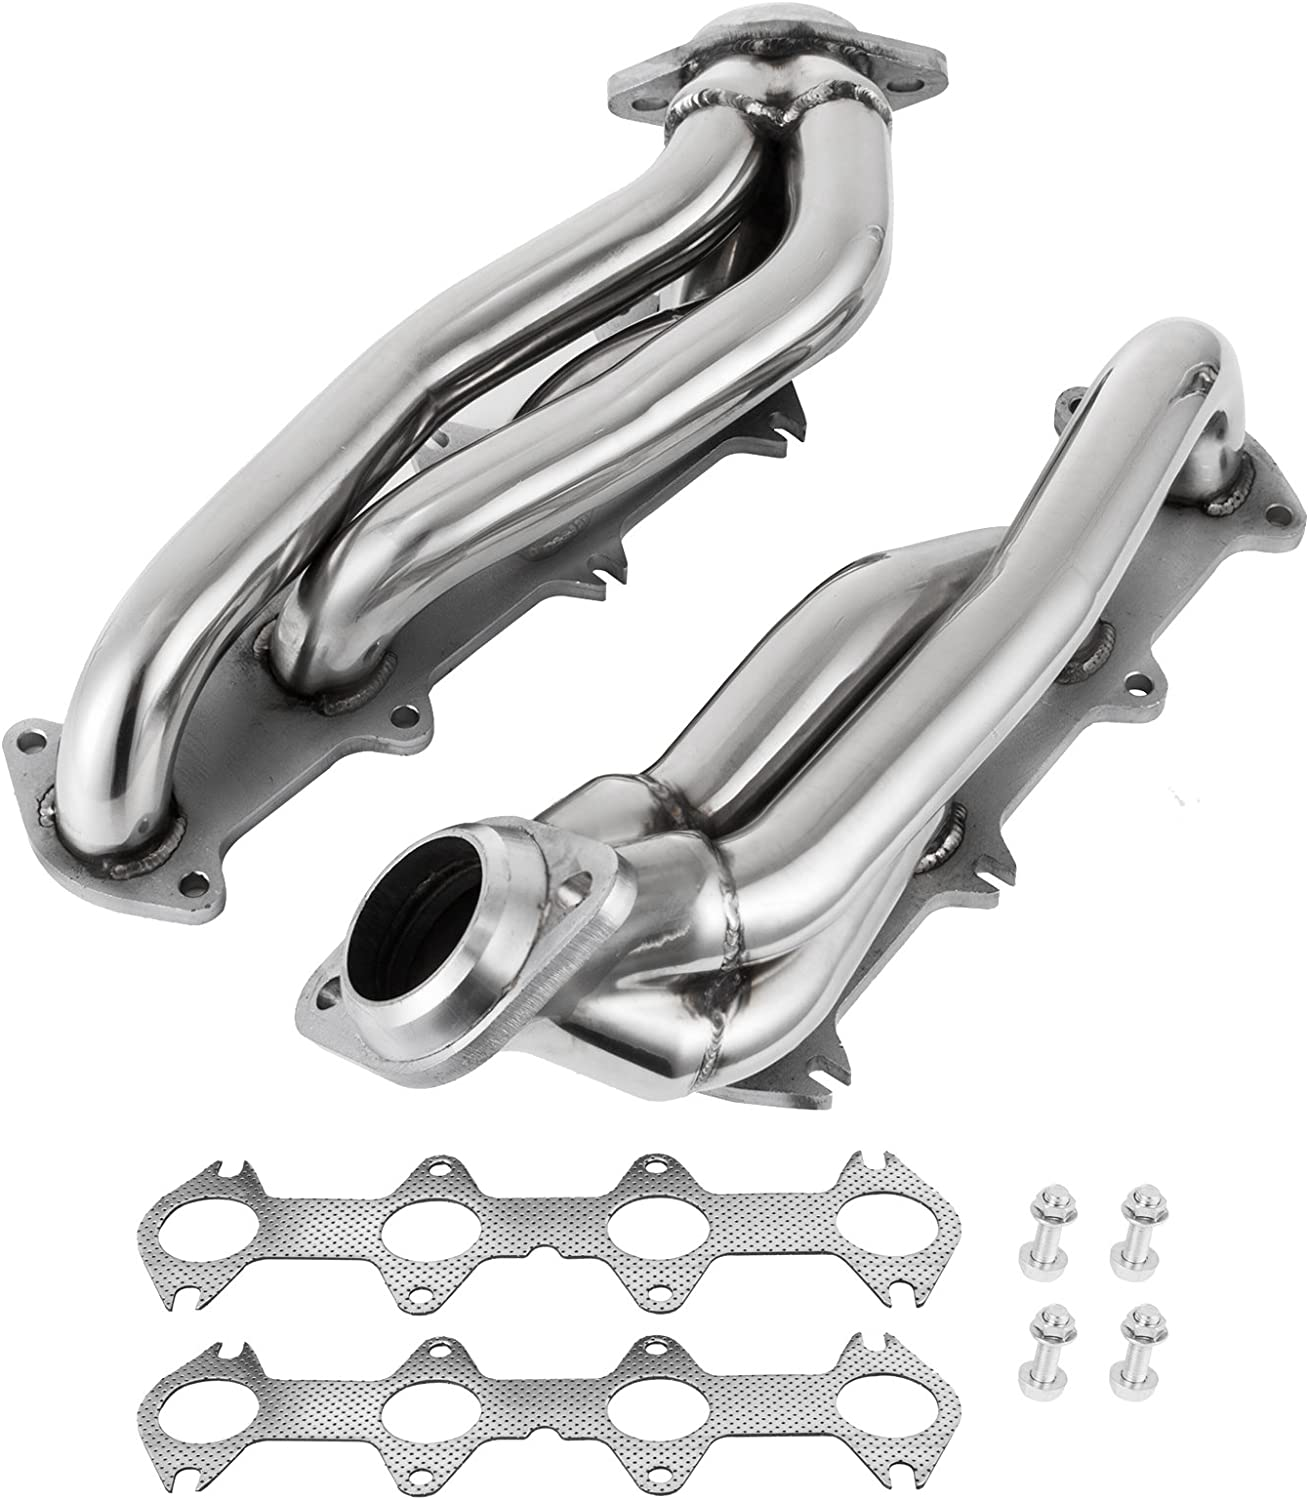 For Ford F150 04-10 5.4L V8 Exhaust Manifold Headers Shorty